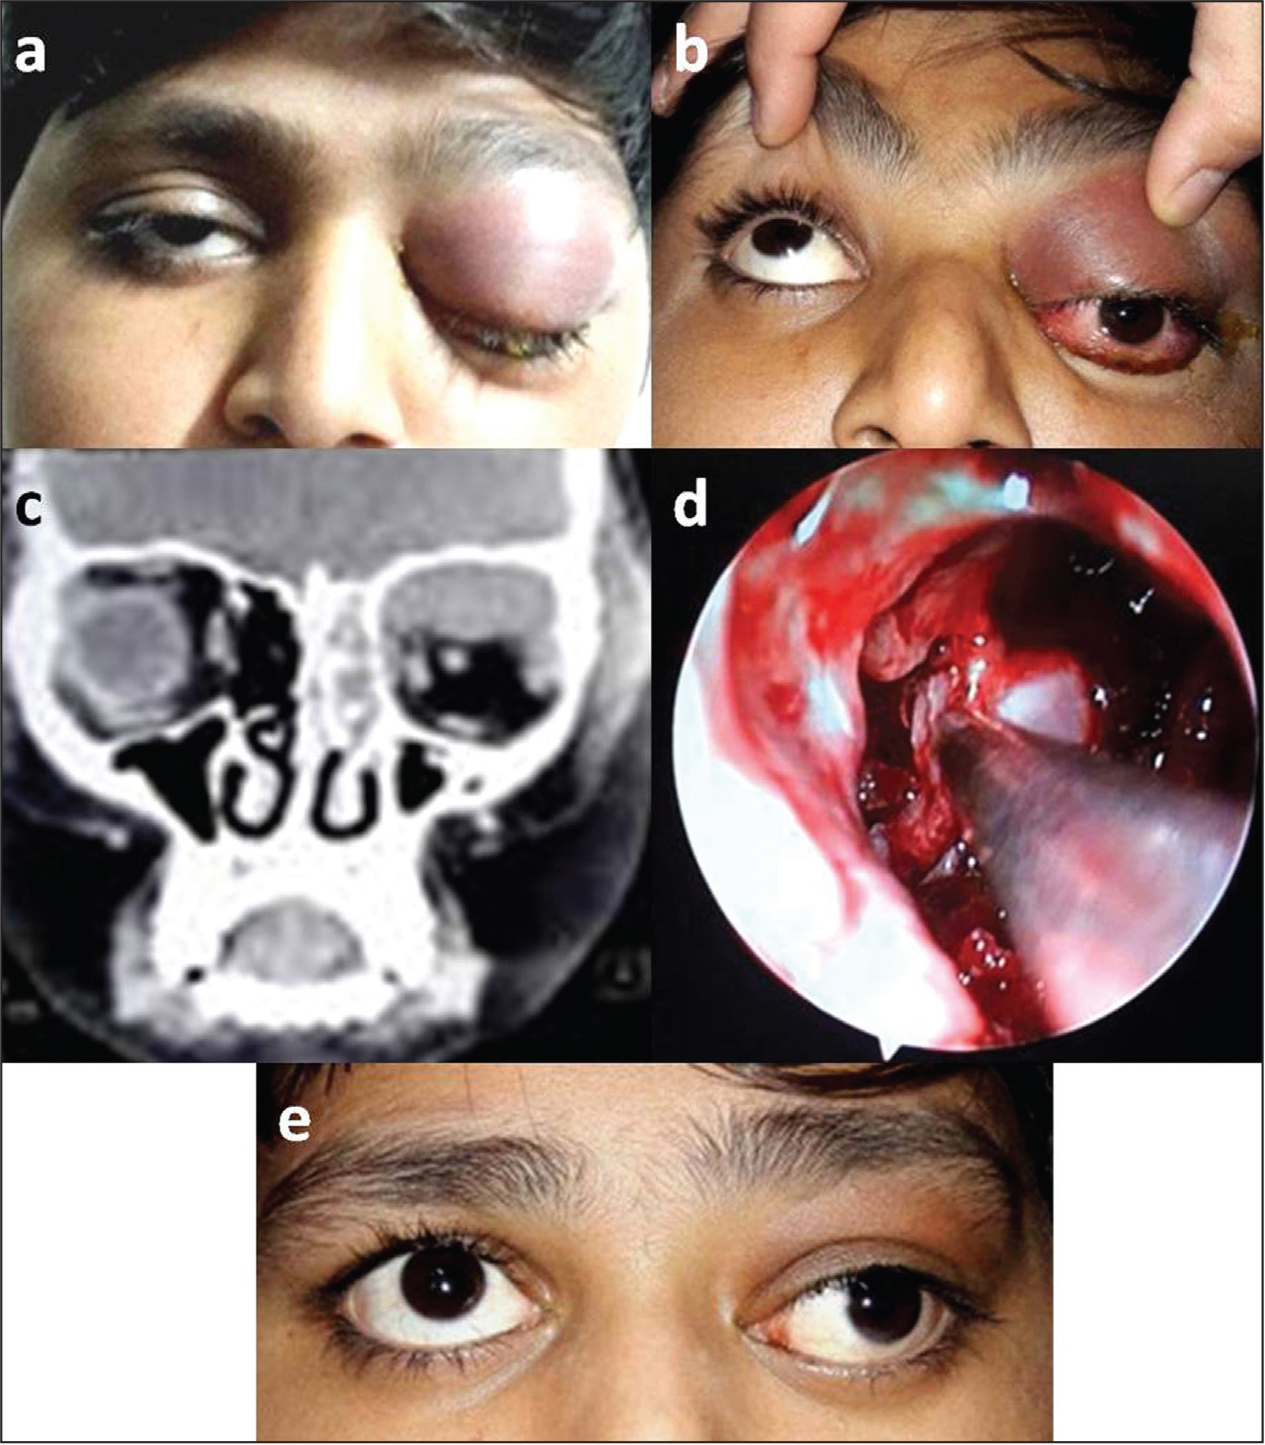 (A) A 5-year-old boy with complete blepharoptosis, eyelid erythema and edema, and fullness of orbital sulci with proptosis. (B) On lifting the eyelid, the conjunctiva showed congestion and chemosis with restricted elevation and inferior dystopia. (C) The computed tomography scan (coronal sections) showed florid ethmoid sinusitis and superior subperiosteal abscess. (D) Intraoperative endoscopic view of functional endoscopic sinus surgery with subperiosteal abscess drainage. (E) At 6 months of follow-up, the orbital cellulitis appeared resolved with restriction of elevation (anatomical failure).